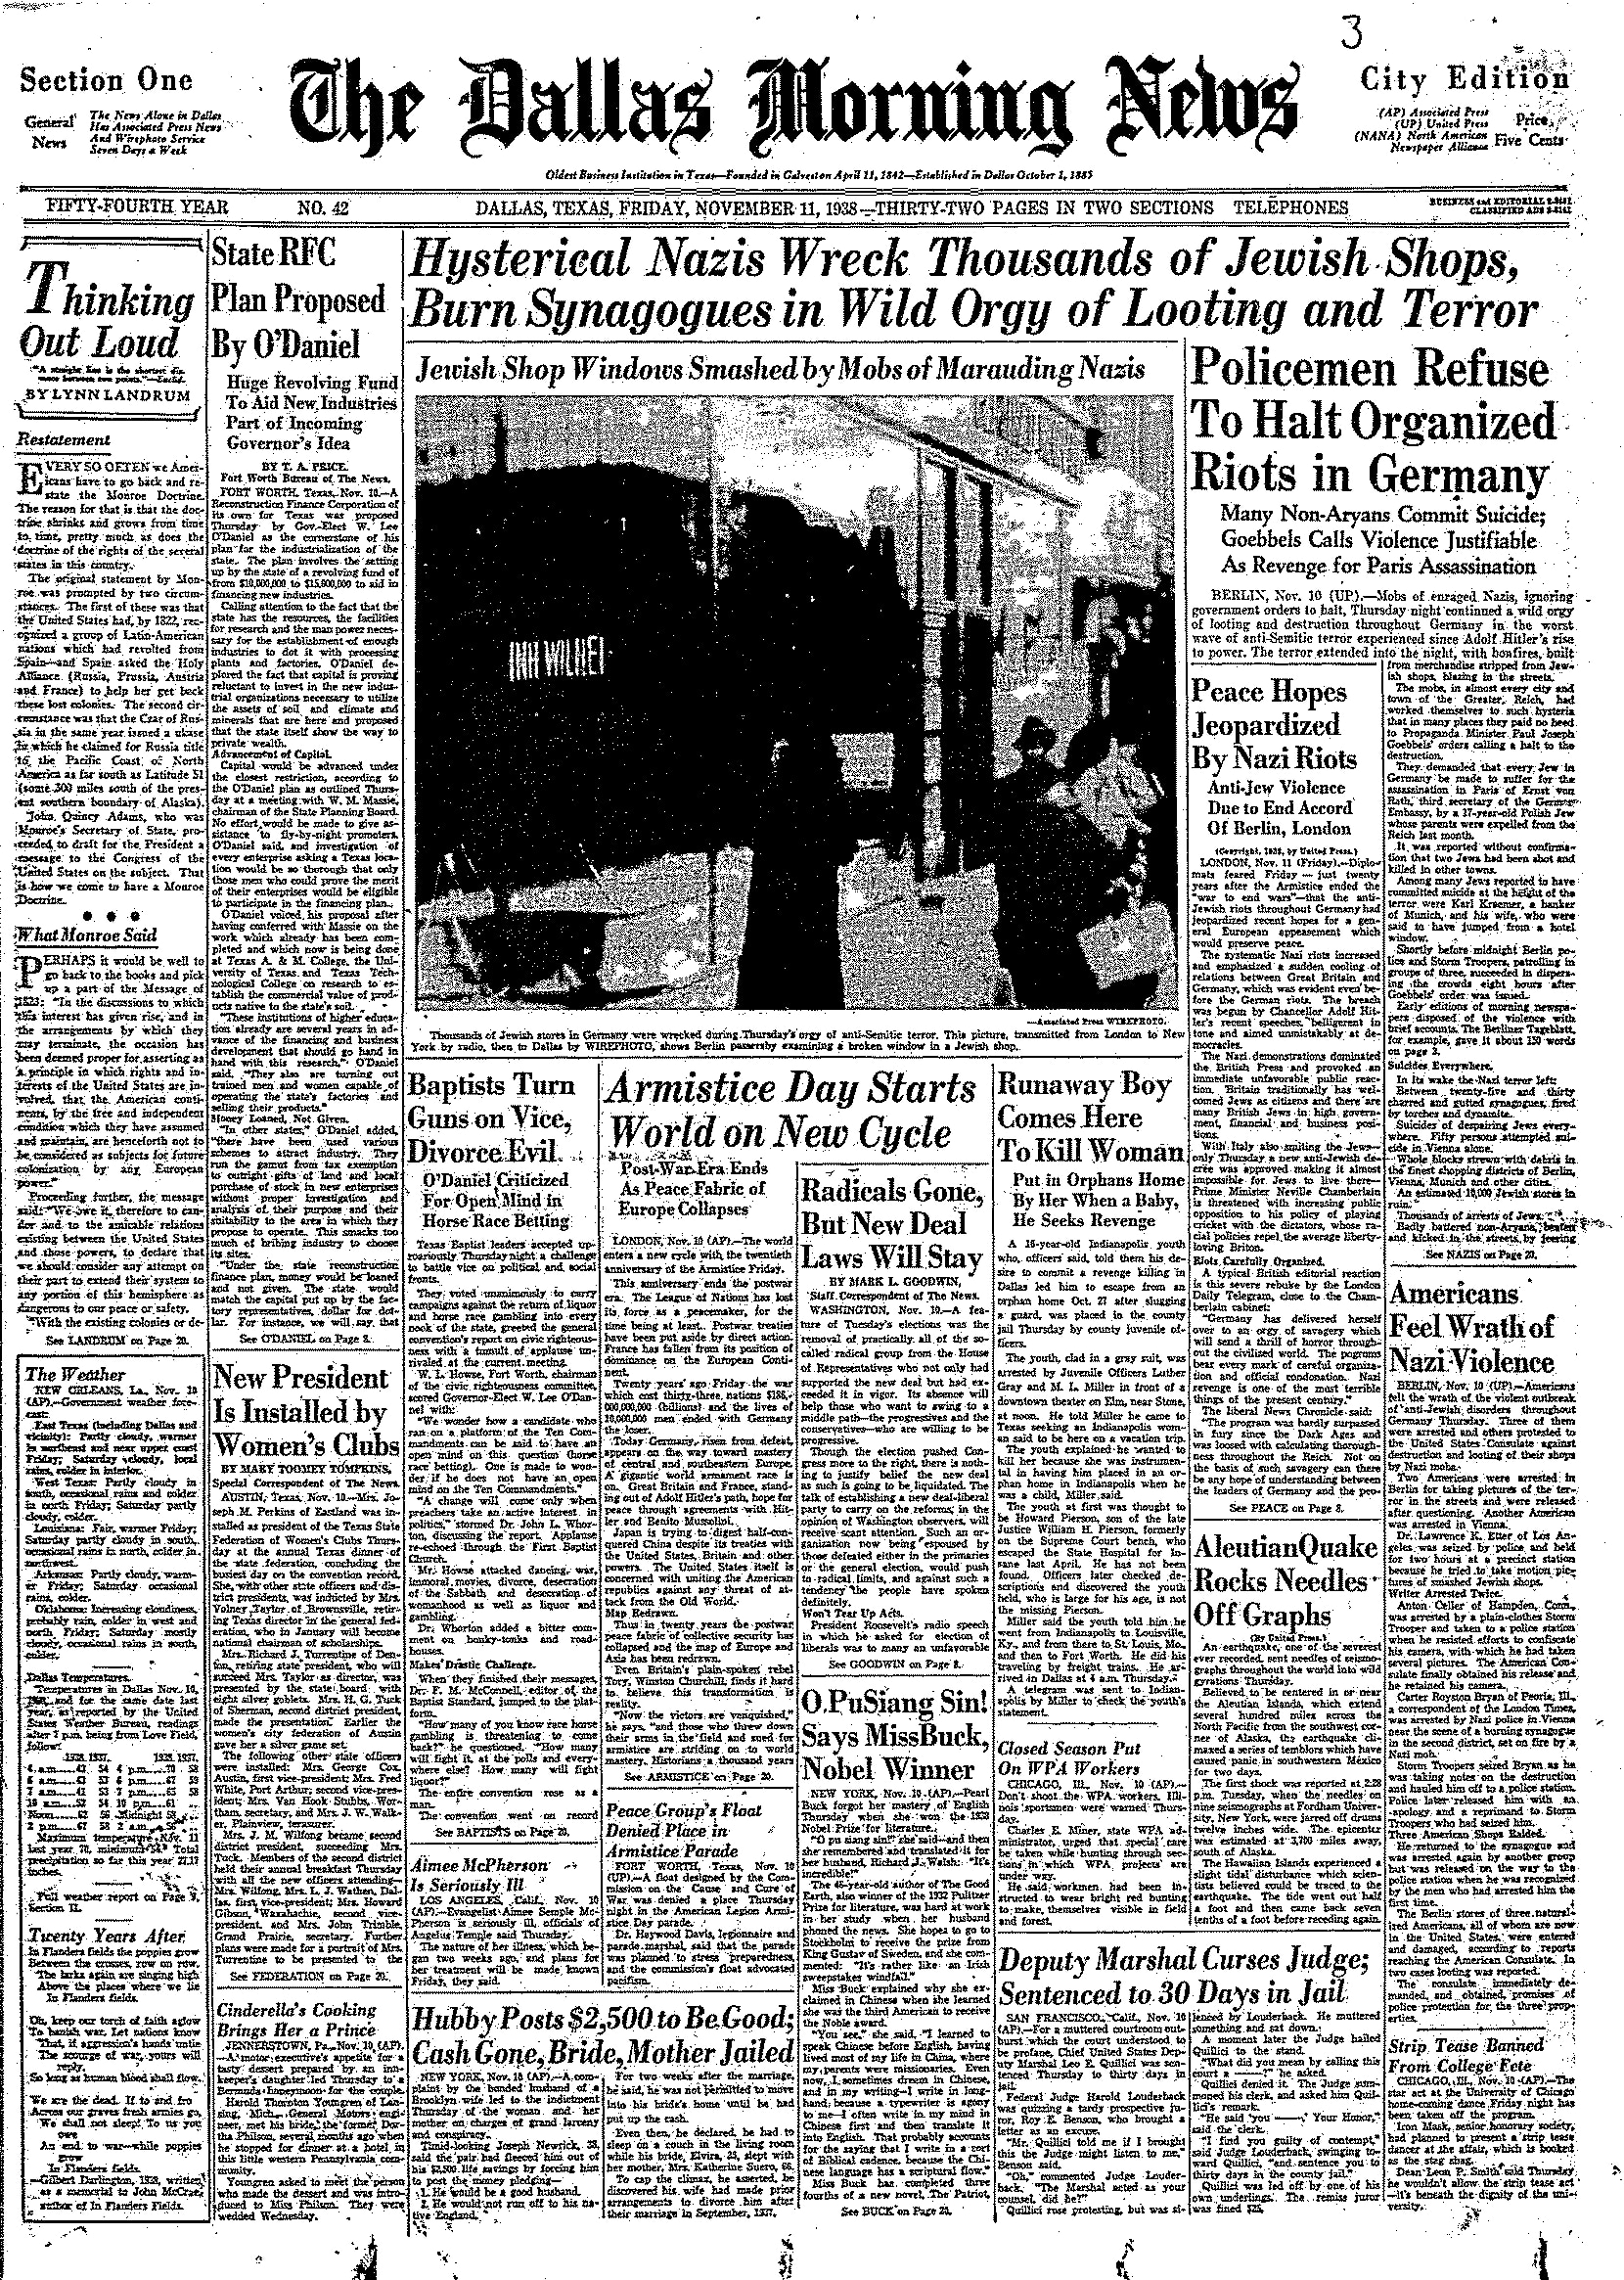 Front page of The Dallas Morning News on Nov. 11, 1938.